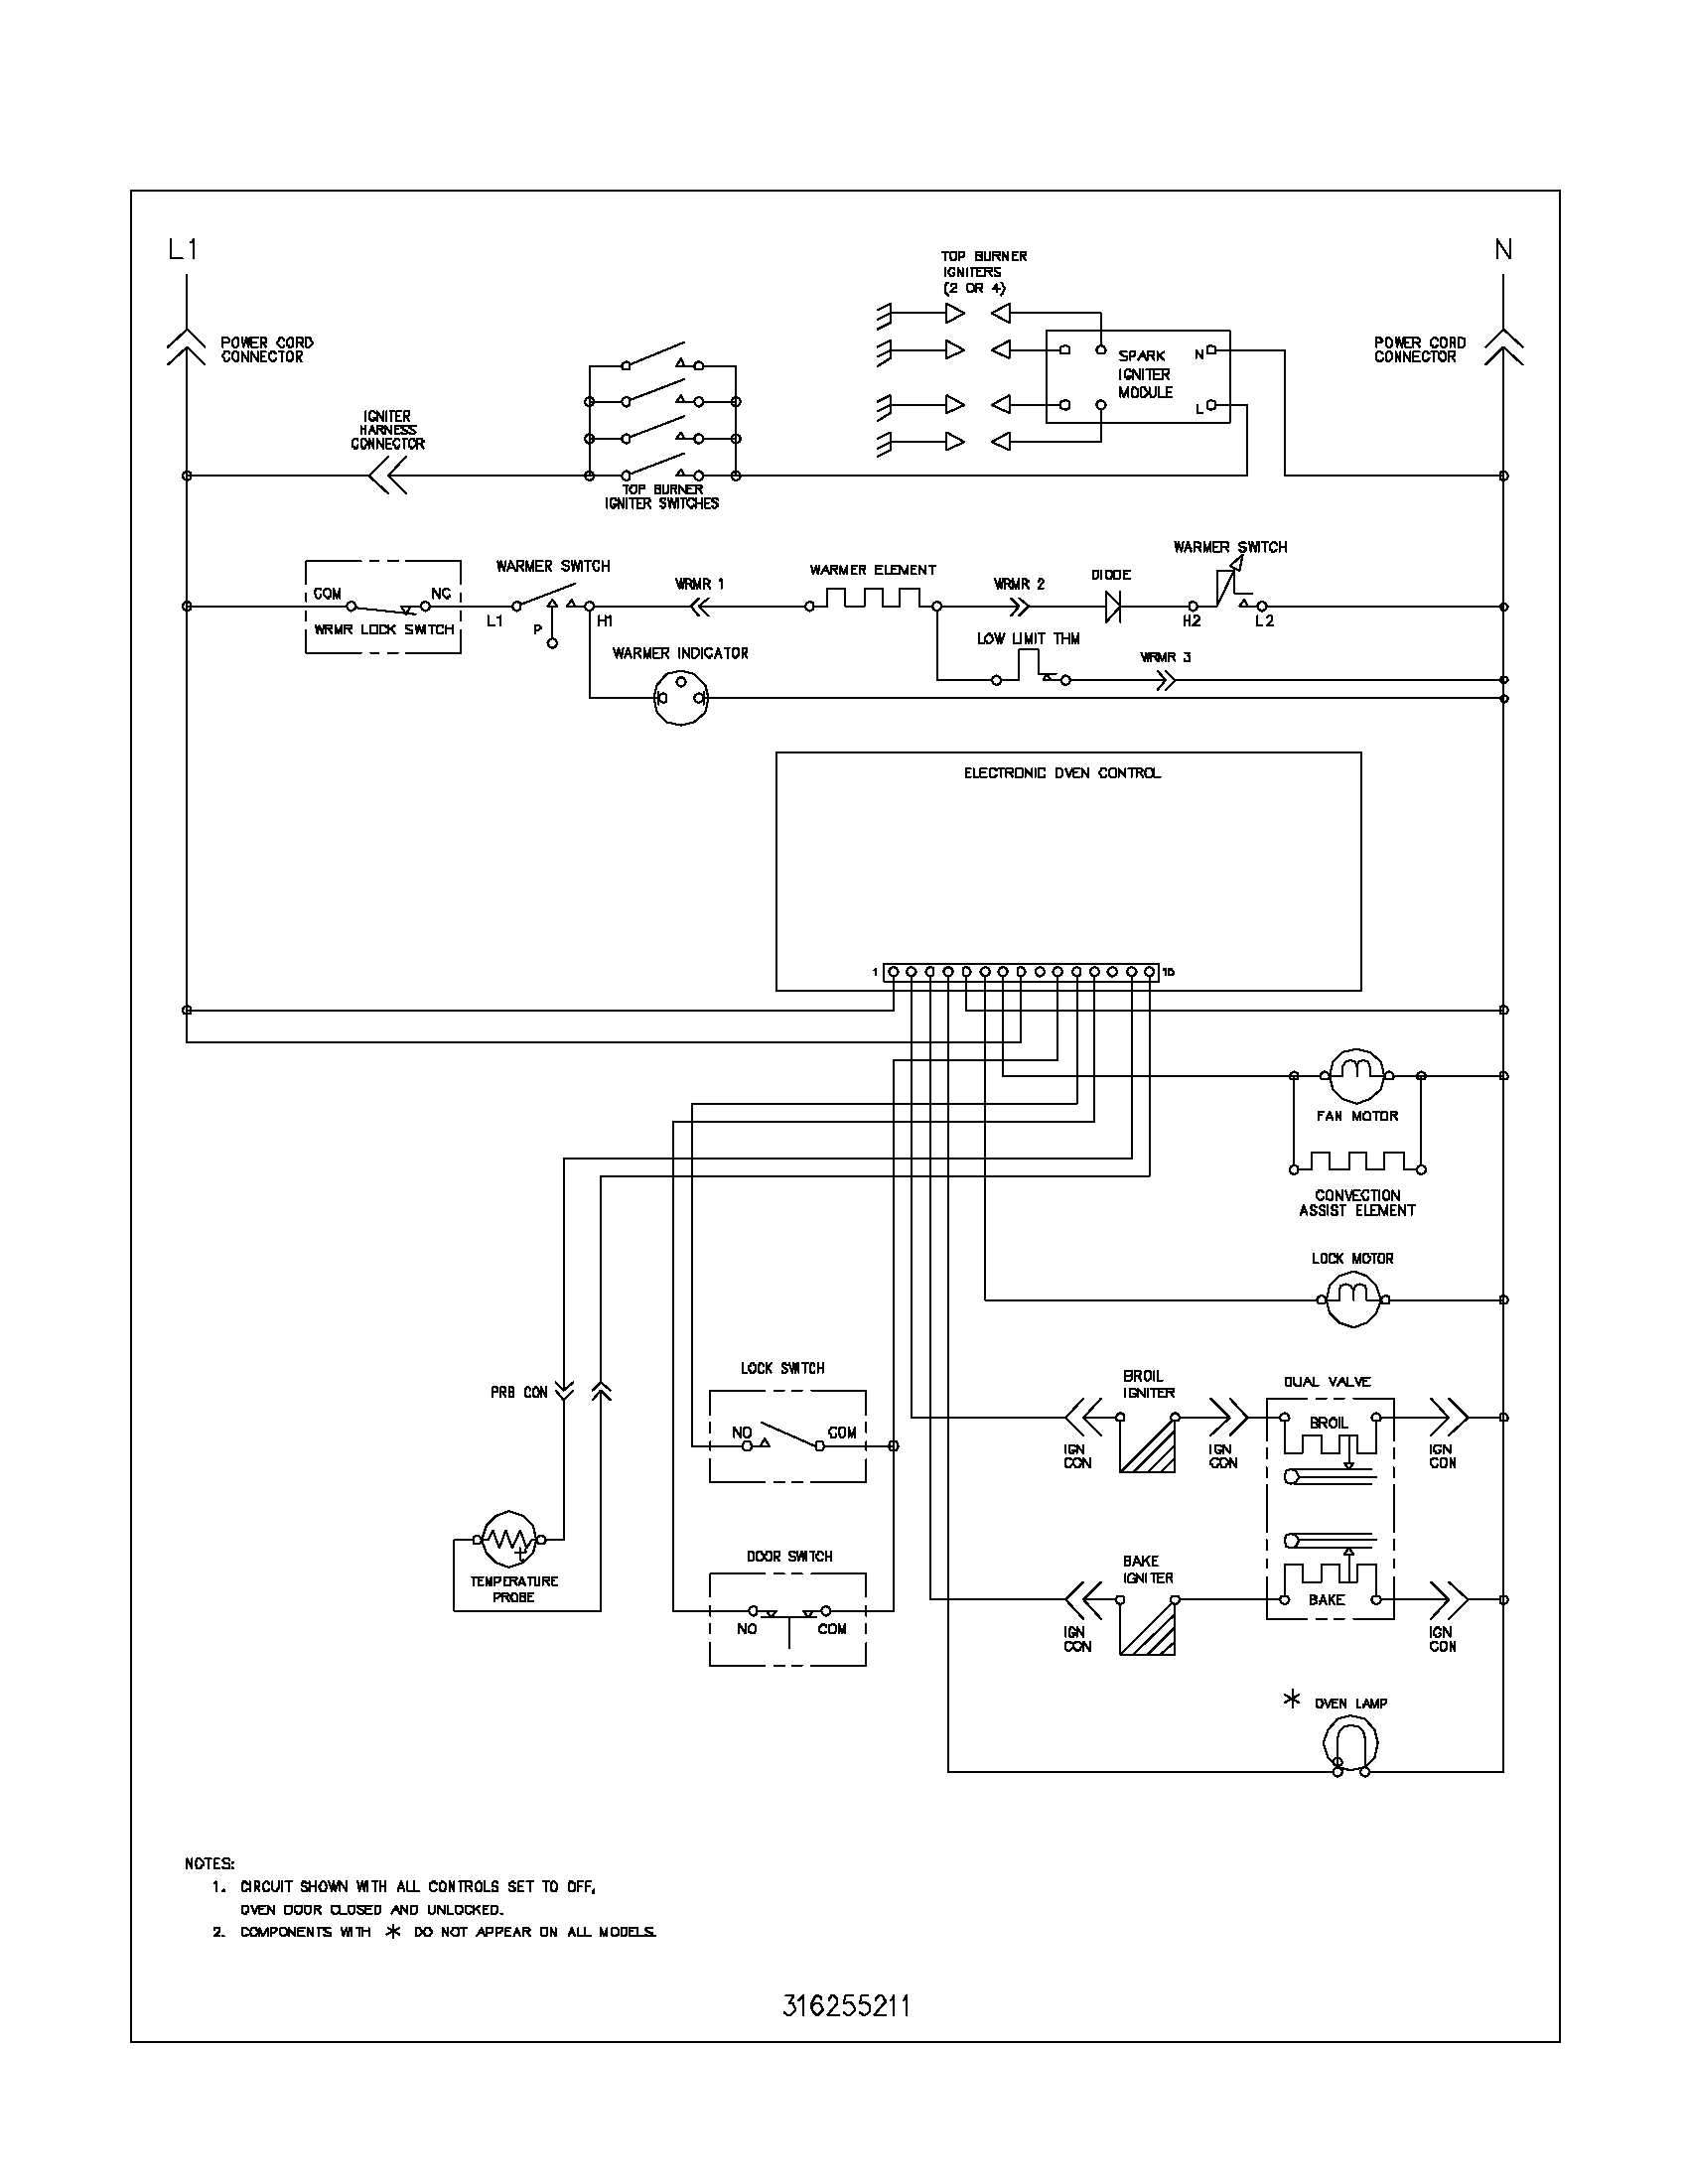 Wiring Diagram For Frigidaire Dryer – The Wiring Diagram ...